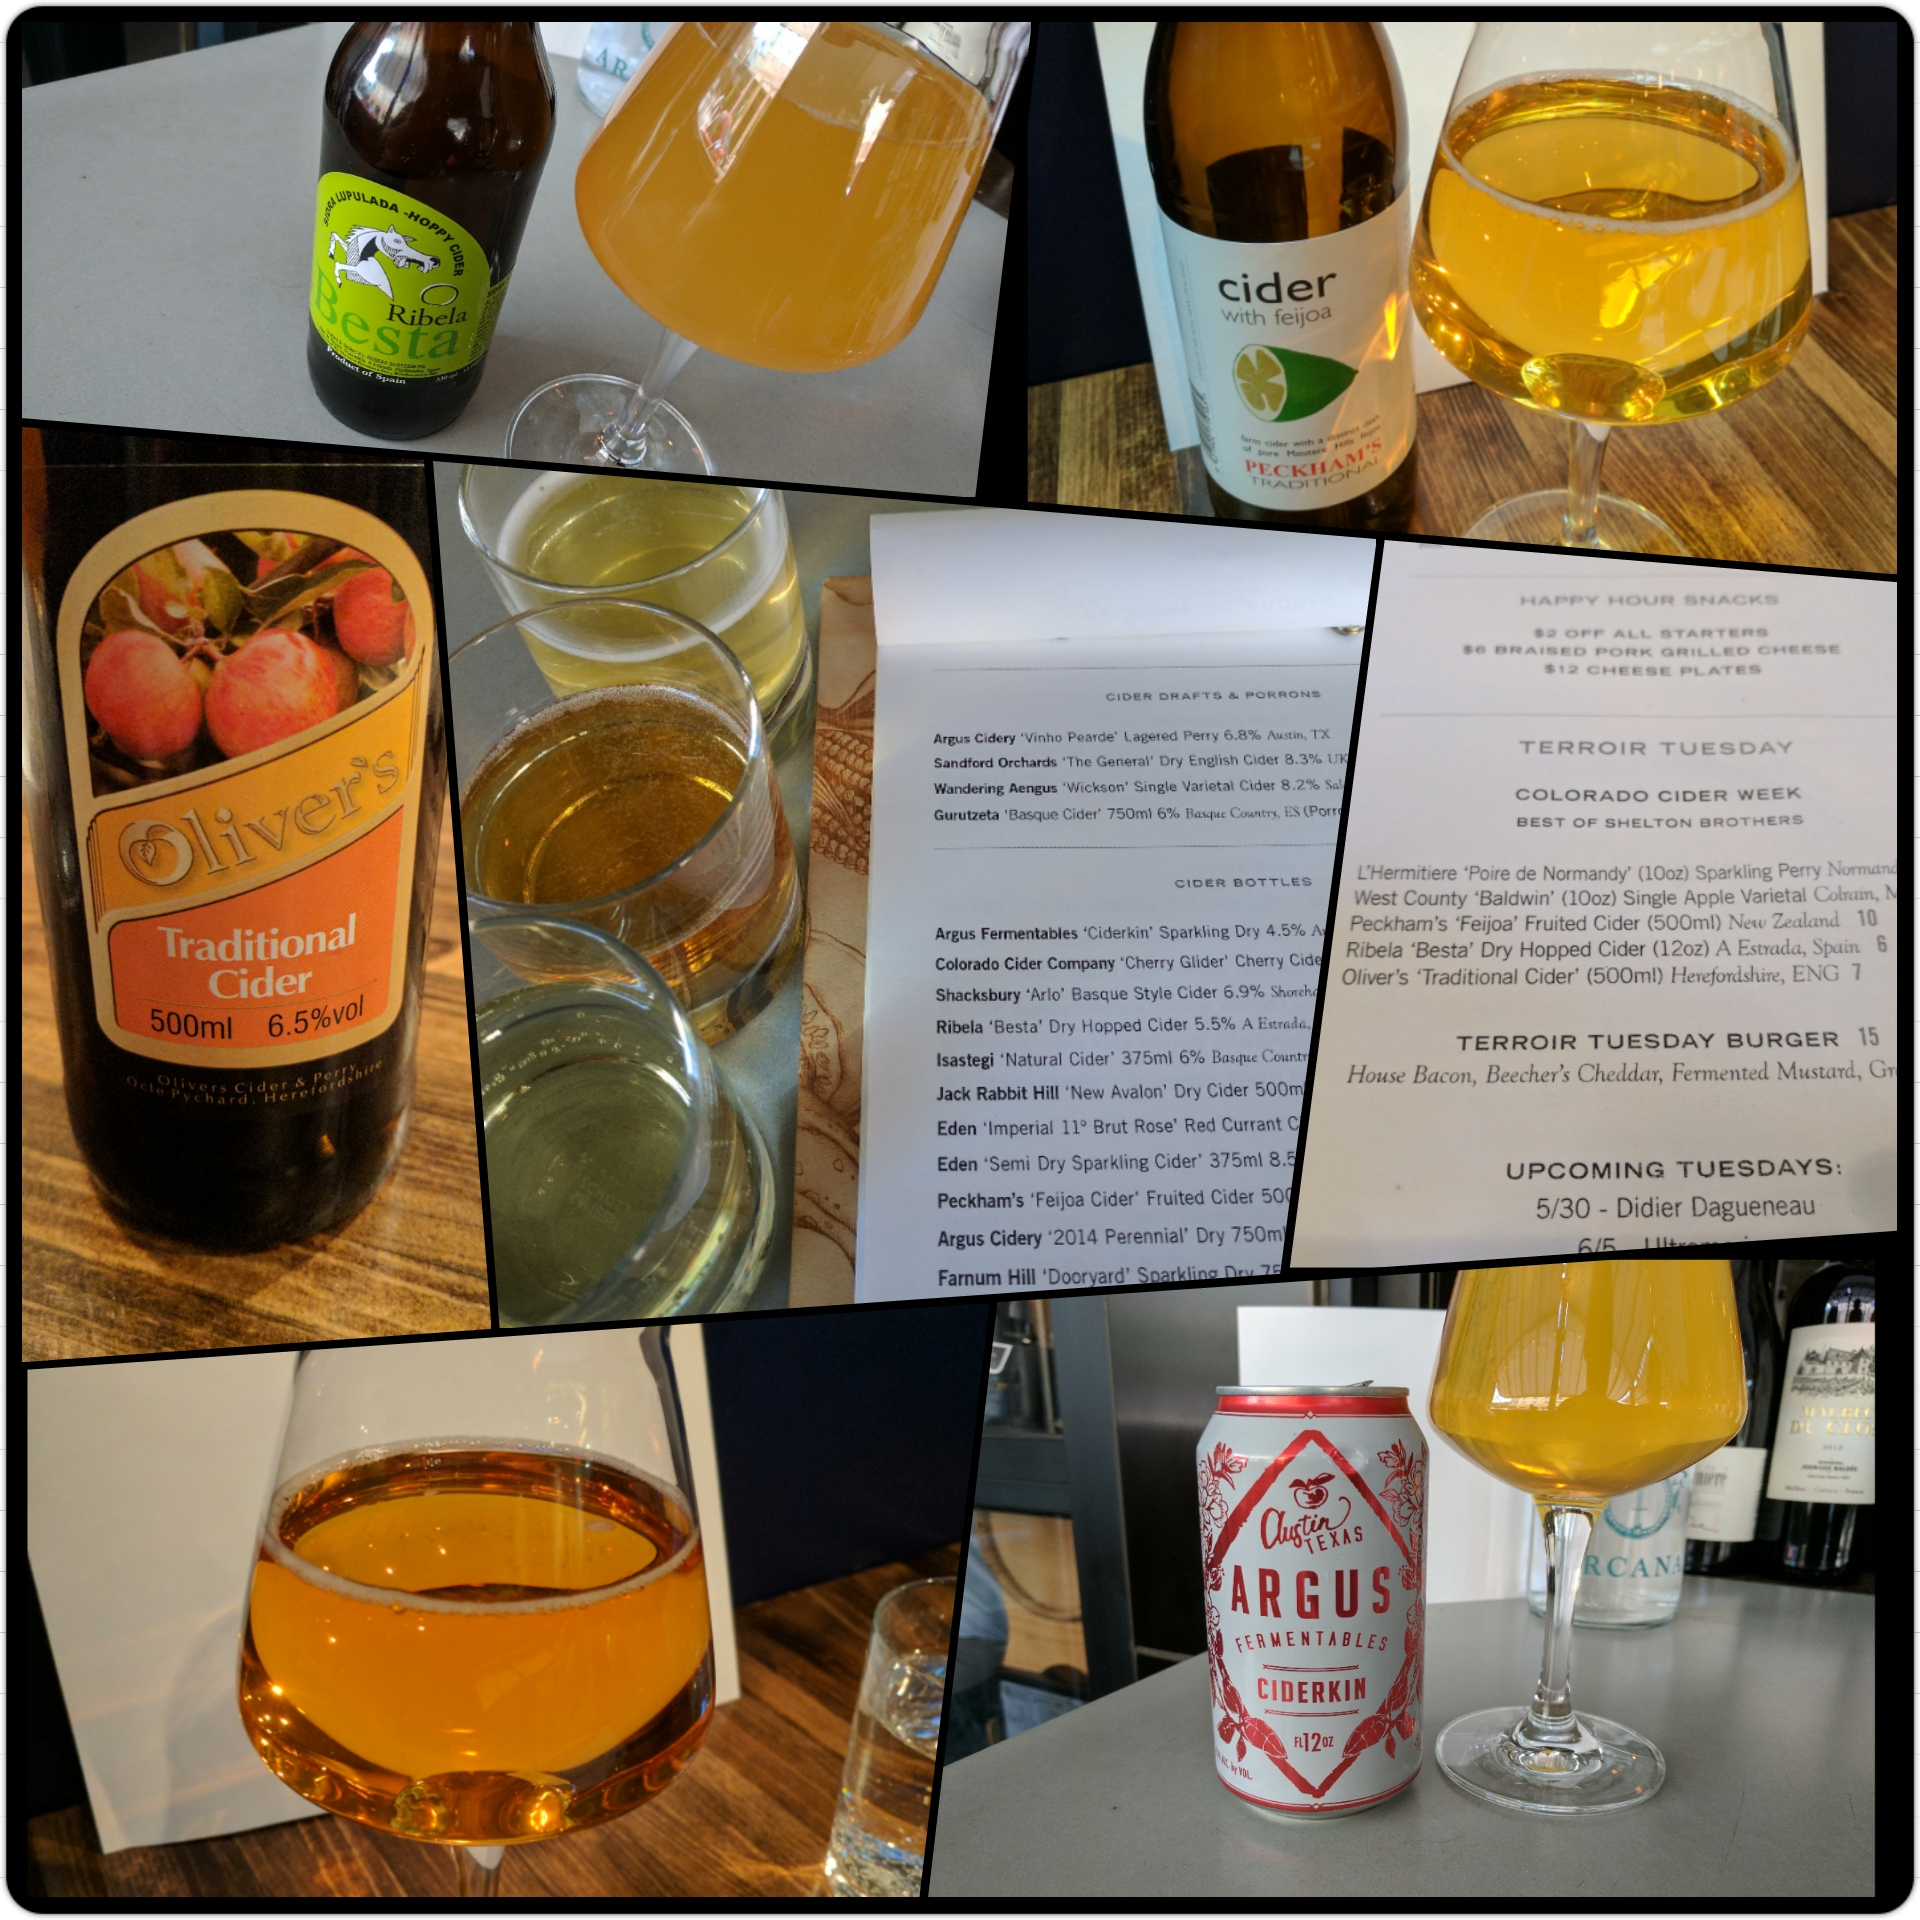 Colorado Cider Week 2017 Day 2 - Shelton Brothers cider tasting - Arcana Terroir Tuesday - Boulder, CO